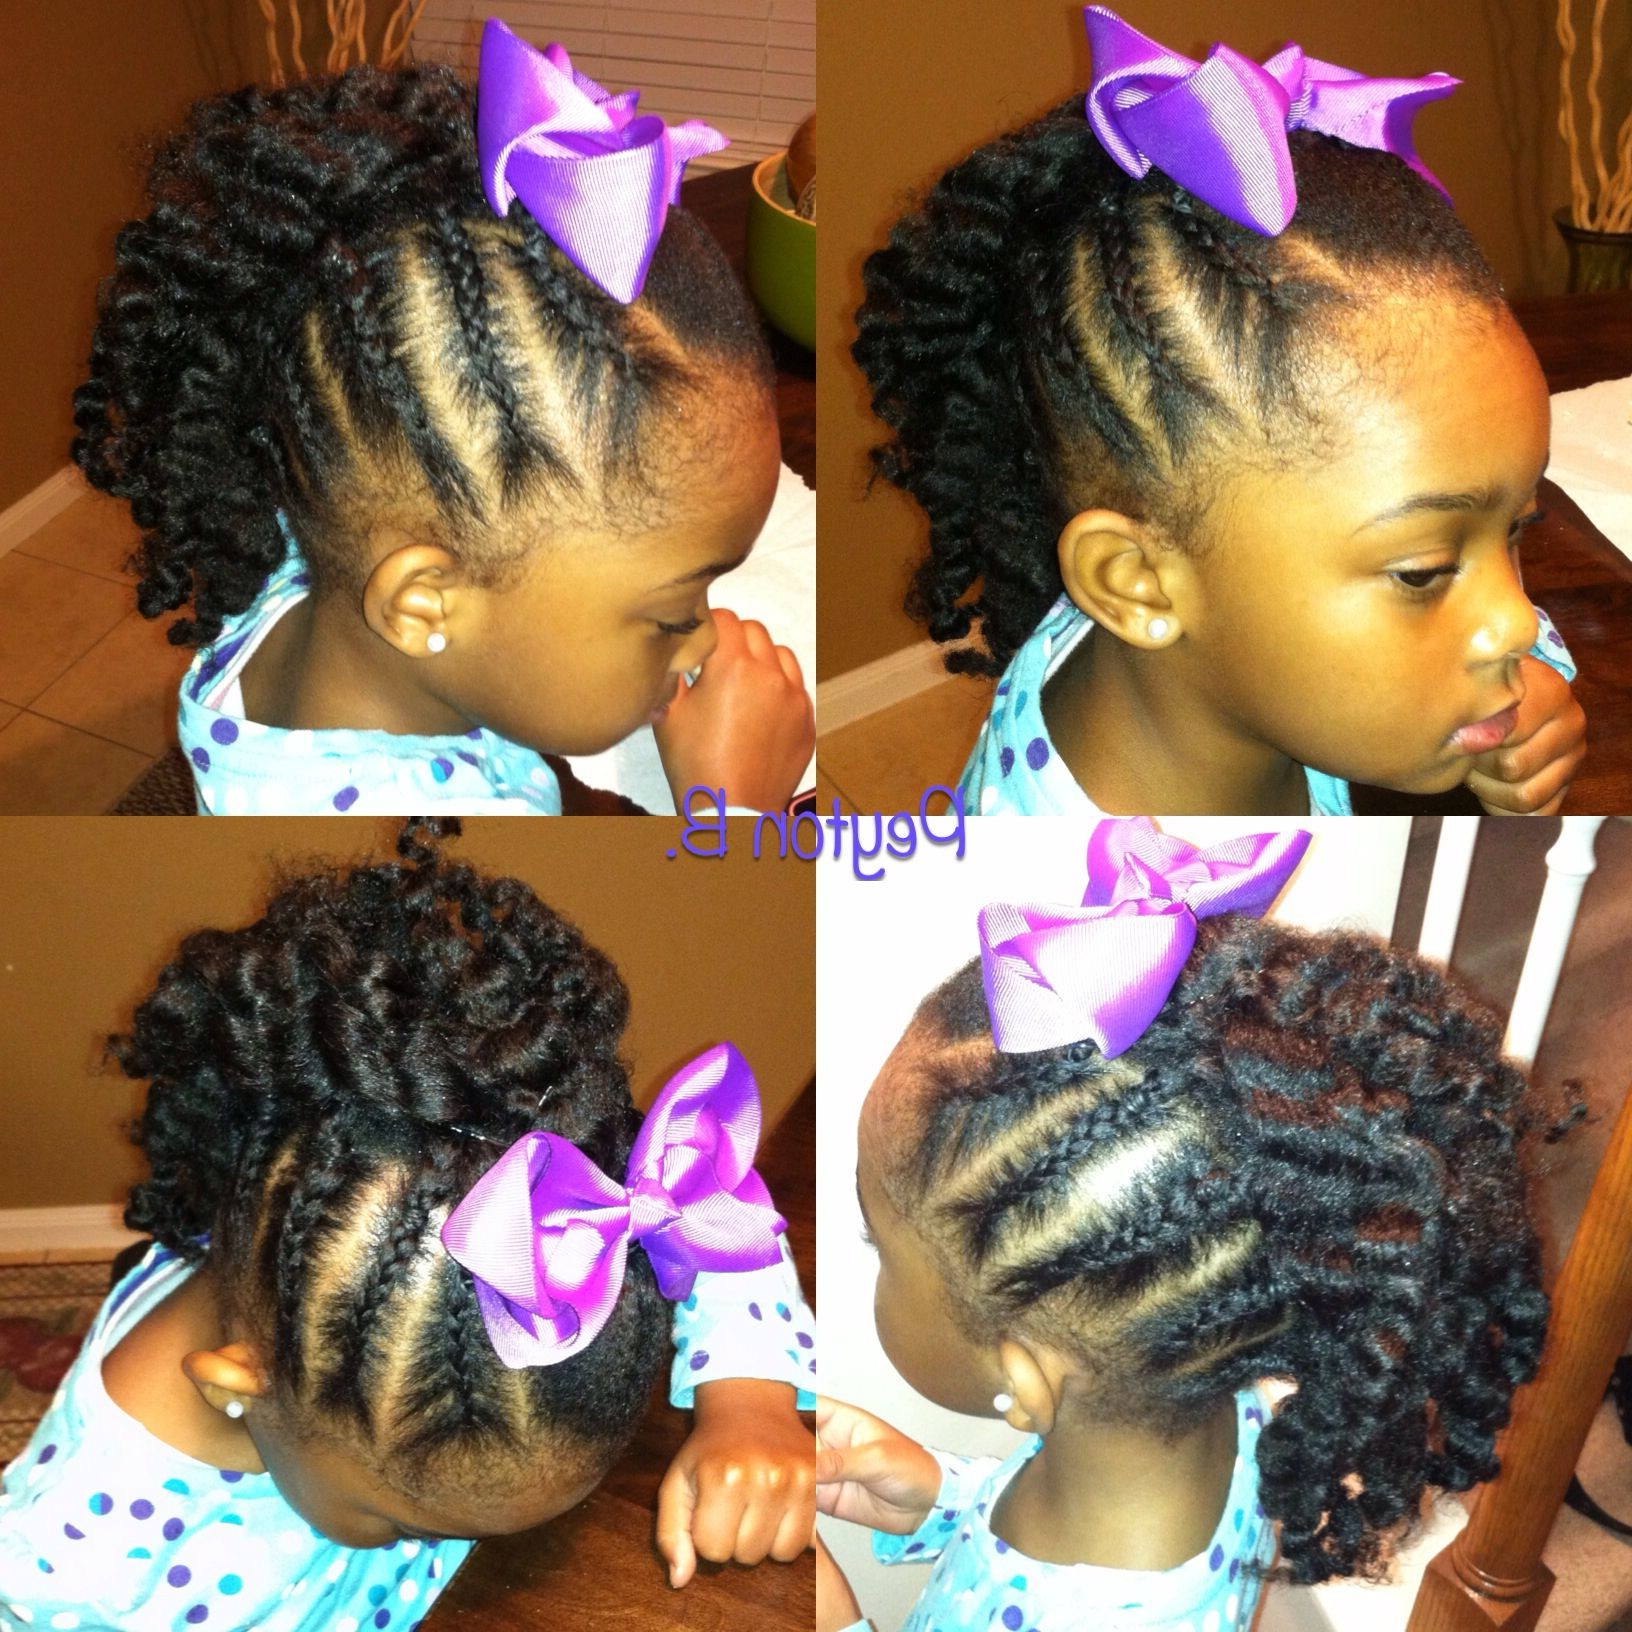 39 New Braided Mohawk Hairstyles For Little Girls Pics (Gallery 3 of 20)